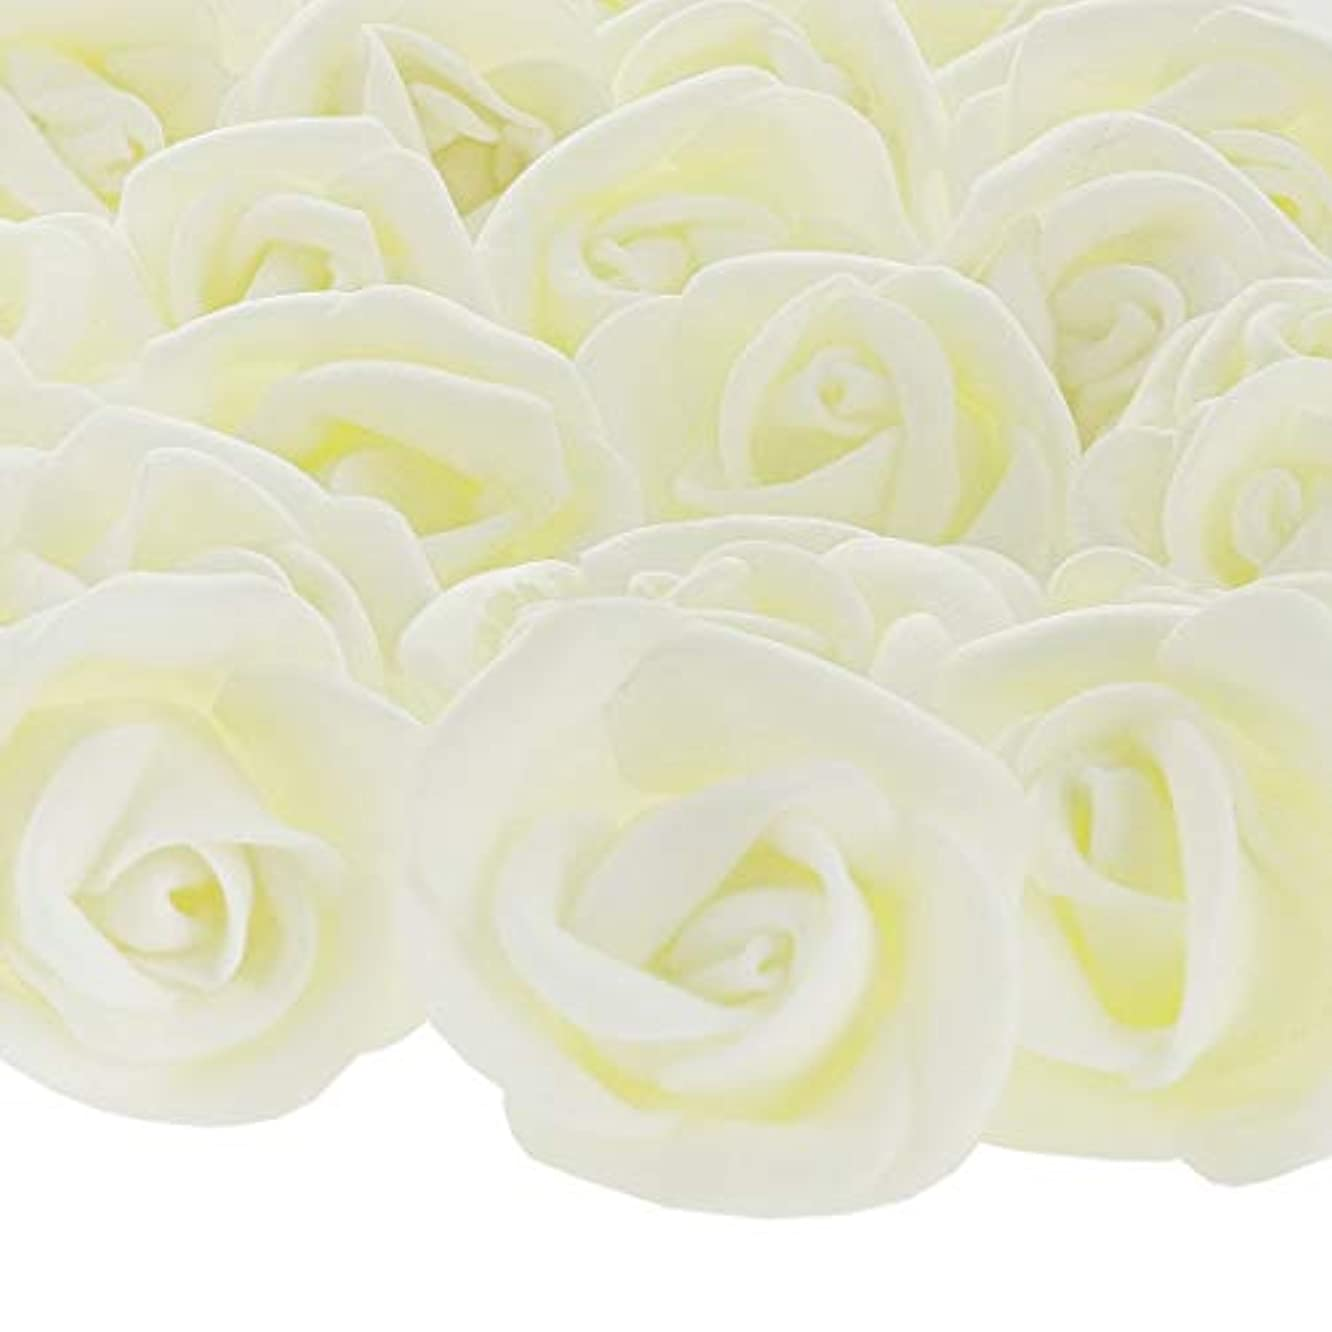 Bright Creations 200-Pack Off White Rose Flower Heads for DIY Crafts, Weddings, Decor, 3 x 2.5 Centimeters